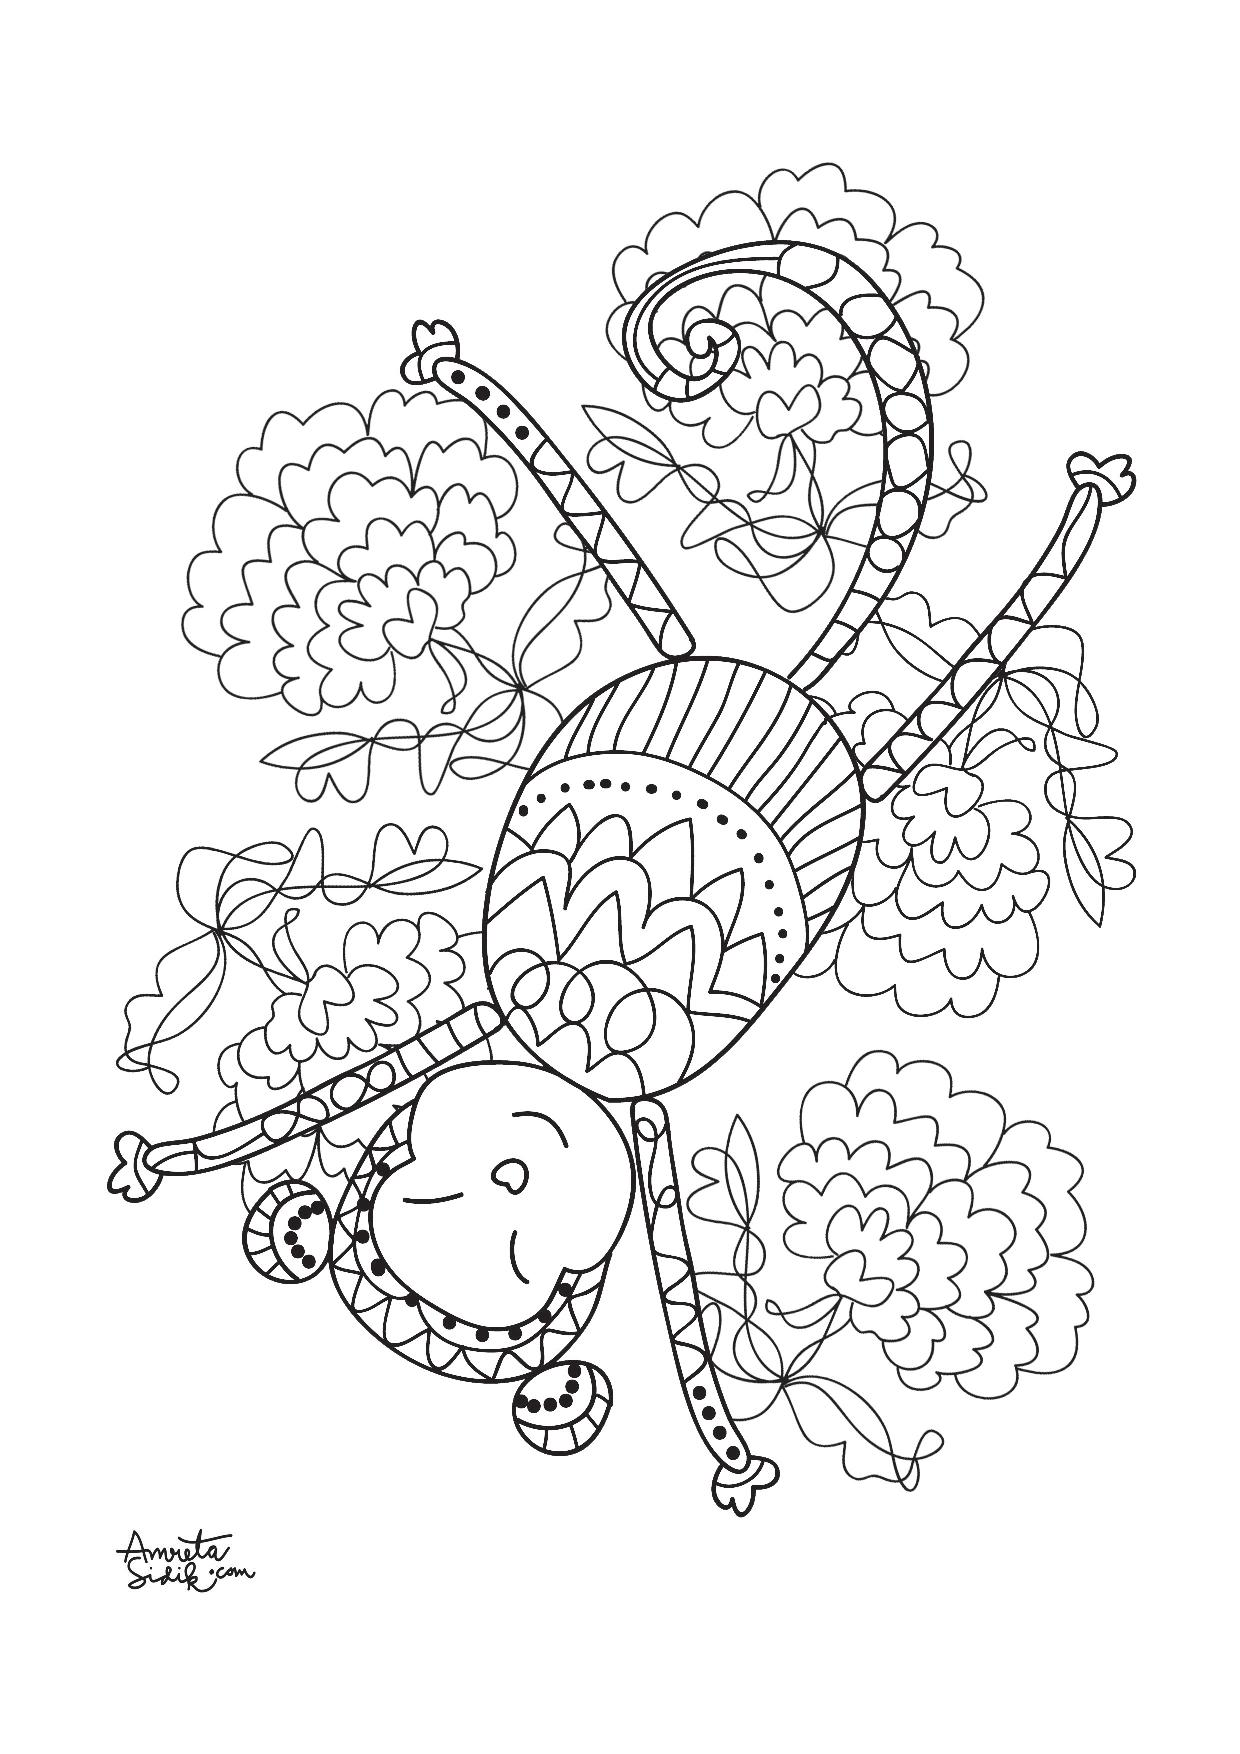 Anti stress colouring pages for adults - Year Of The Monkey 5 Image With Monkey From The Gallery Zen